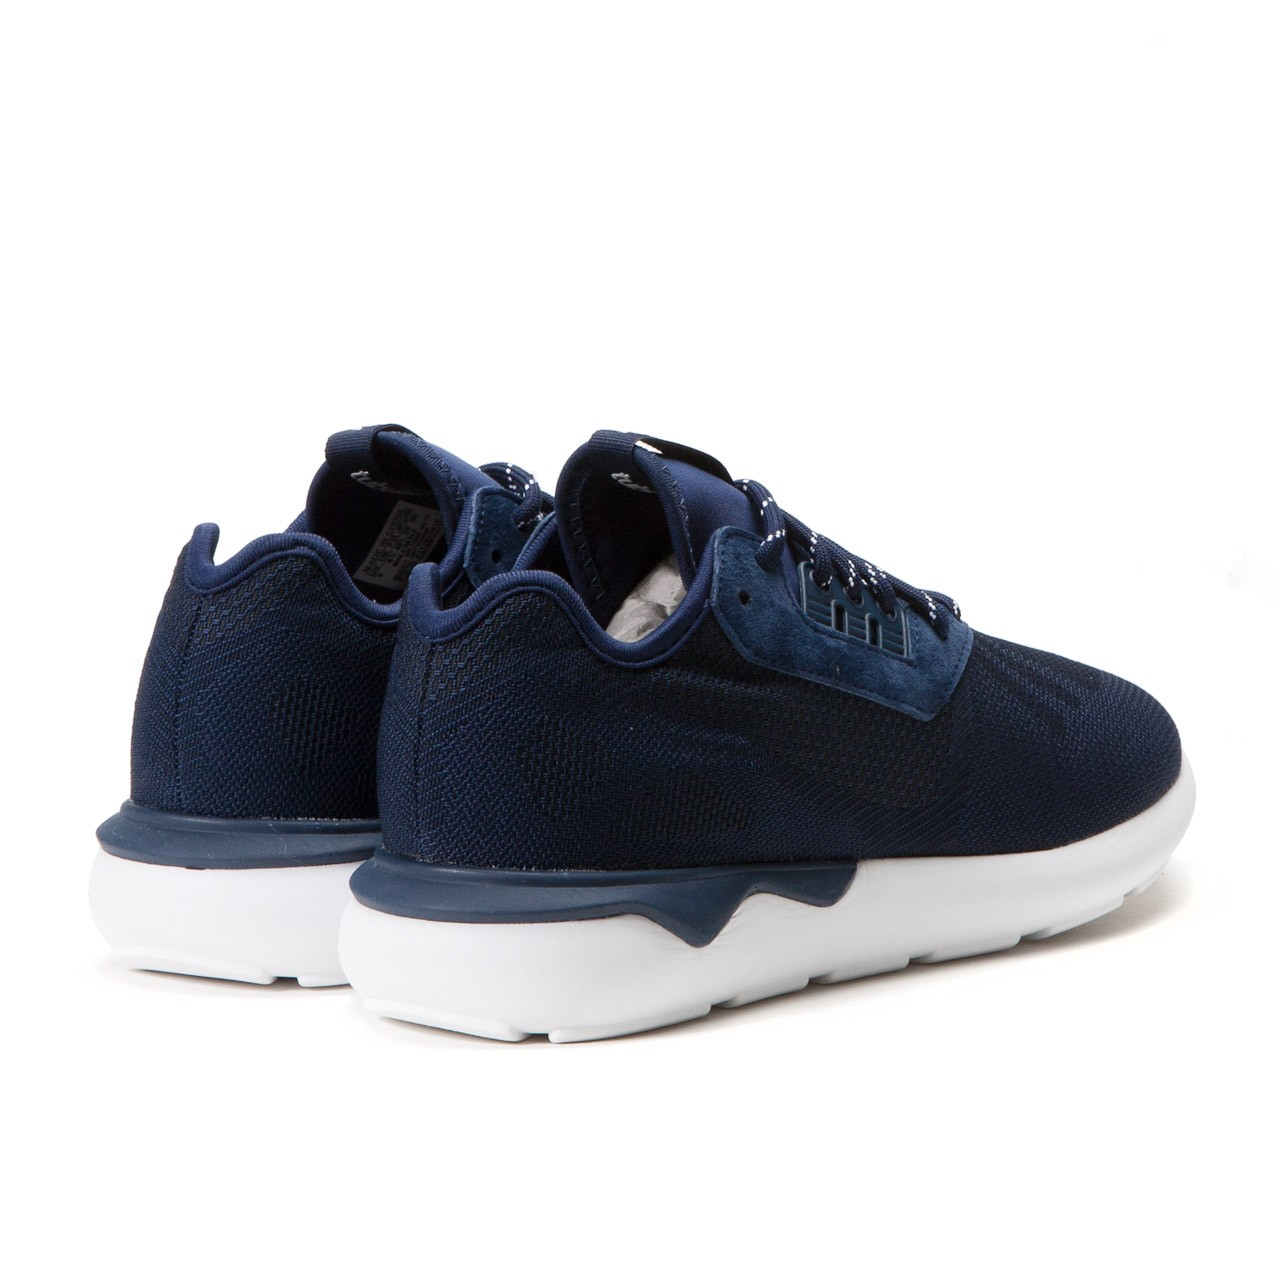 The adidas Tubular Runner retails at €119.90 (approx. RM501) and is available via Allike.